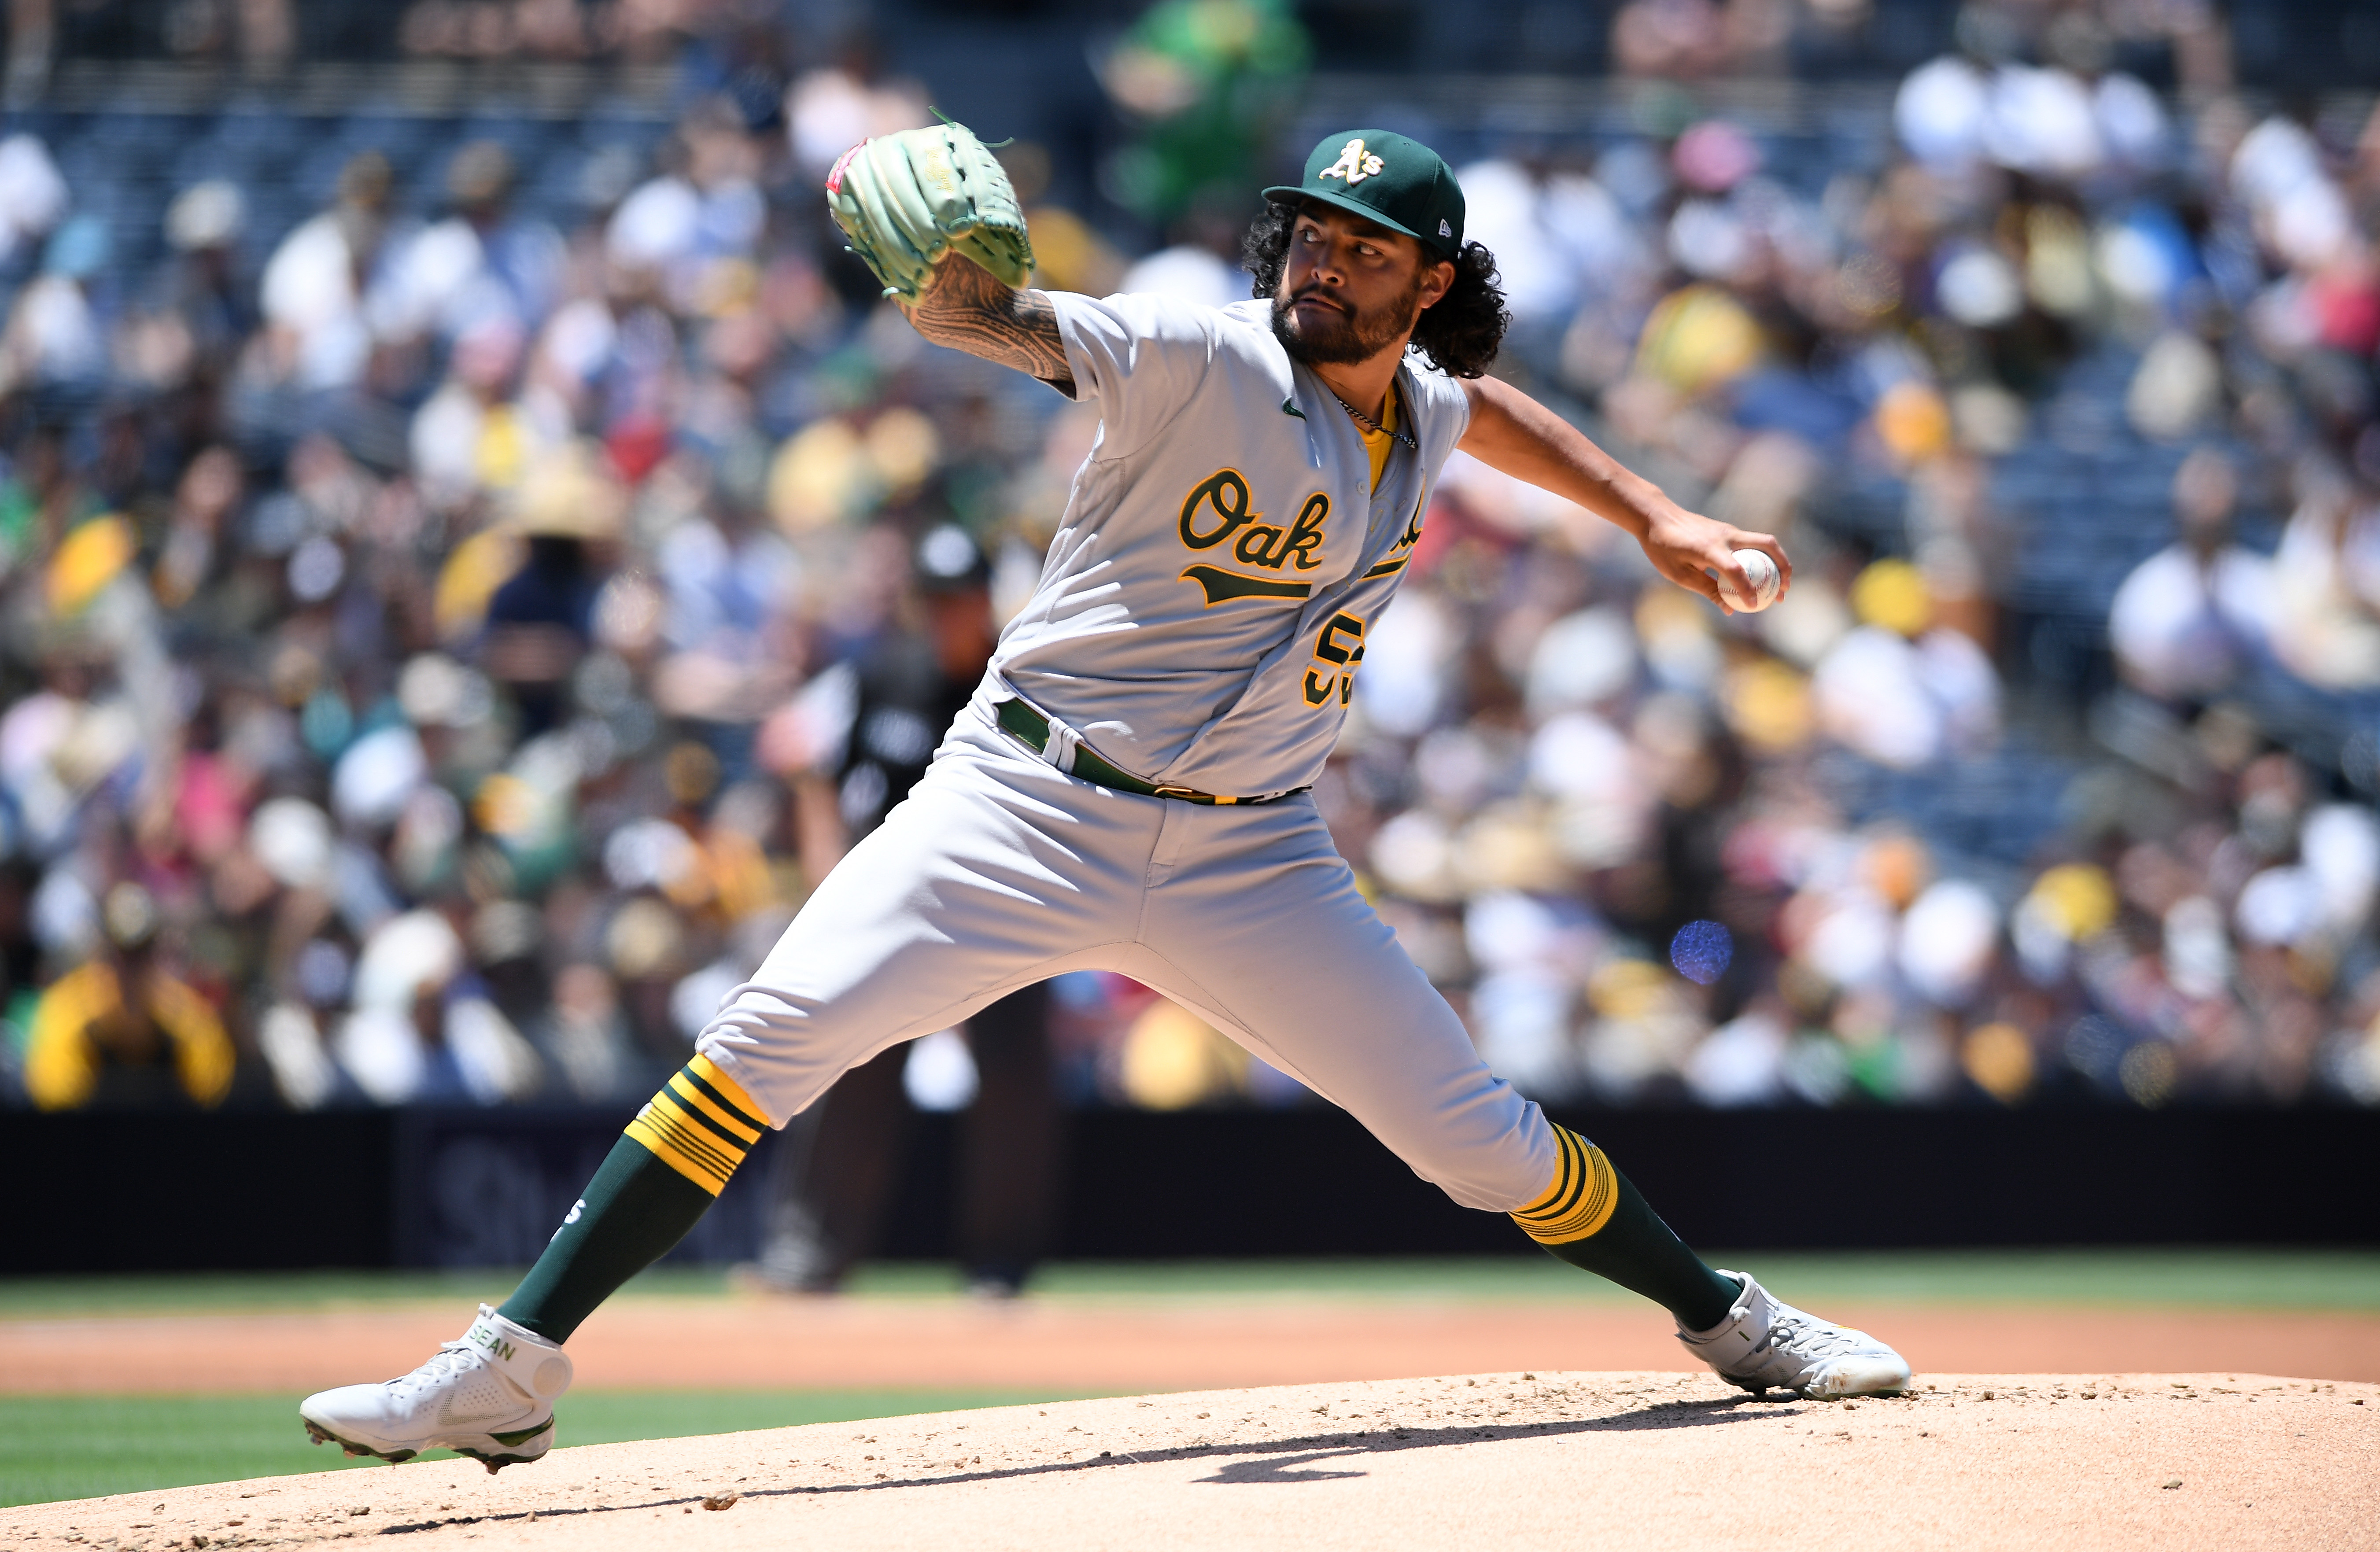 Jul 28, 2021; San Diego, California, USA; Oakland Athletics starting pitcher Sean Manaea (55) throws a pitch against the San Diego Padres during the first inning at Petco Park. Mandatory Credit: Orlando Ramirez-USA TODAY Sports